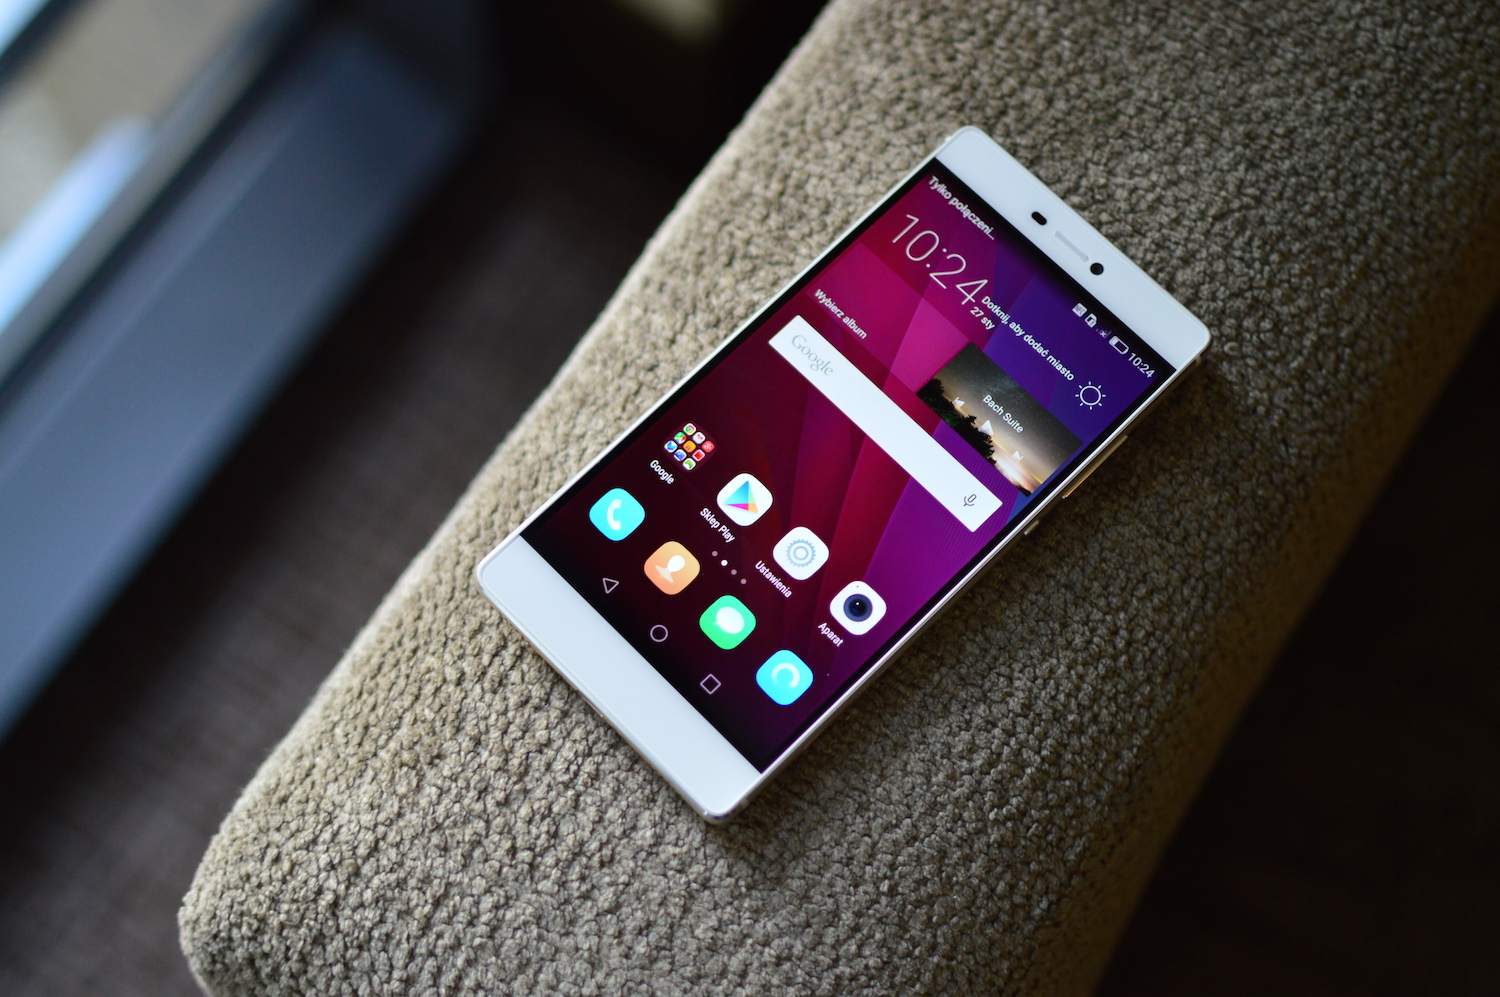 Image result for Huawei P8